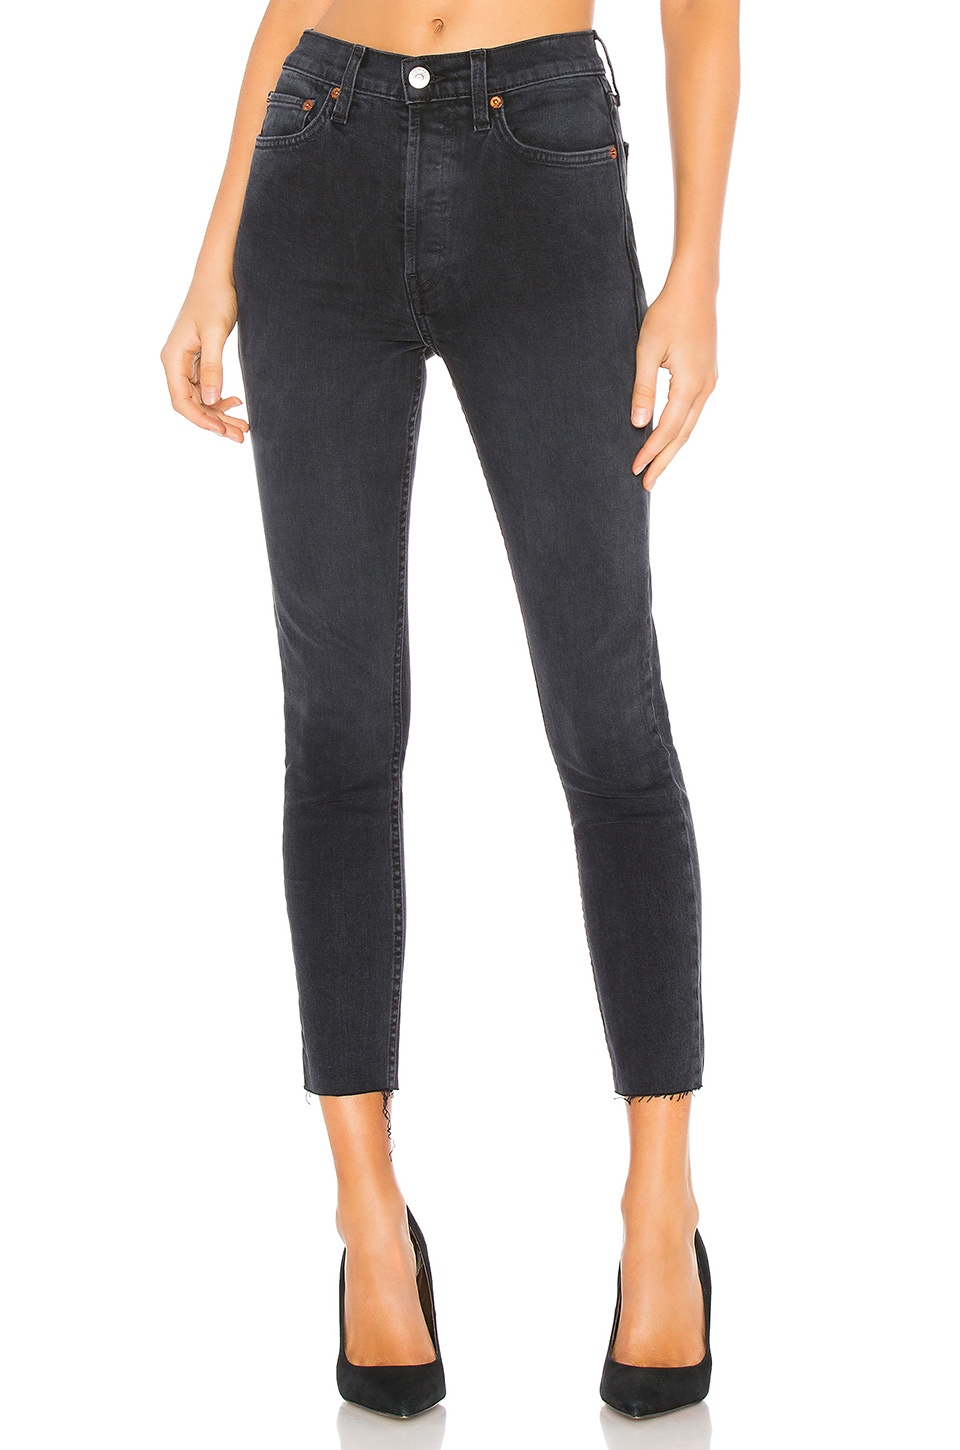 RE/DONE Originals High Rise Ankle Crop in Faded Black